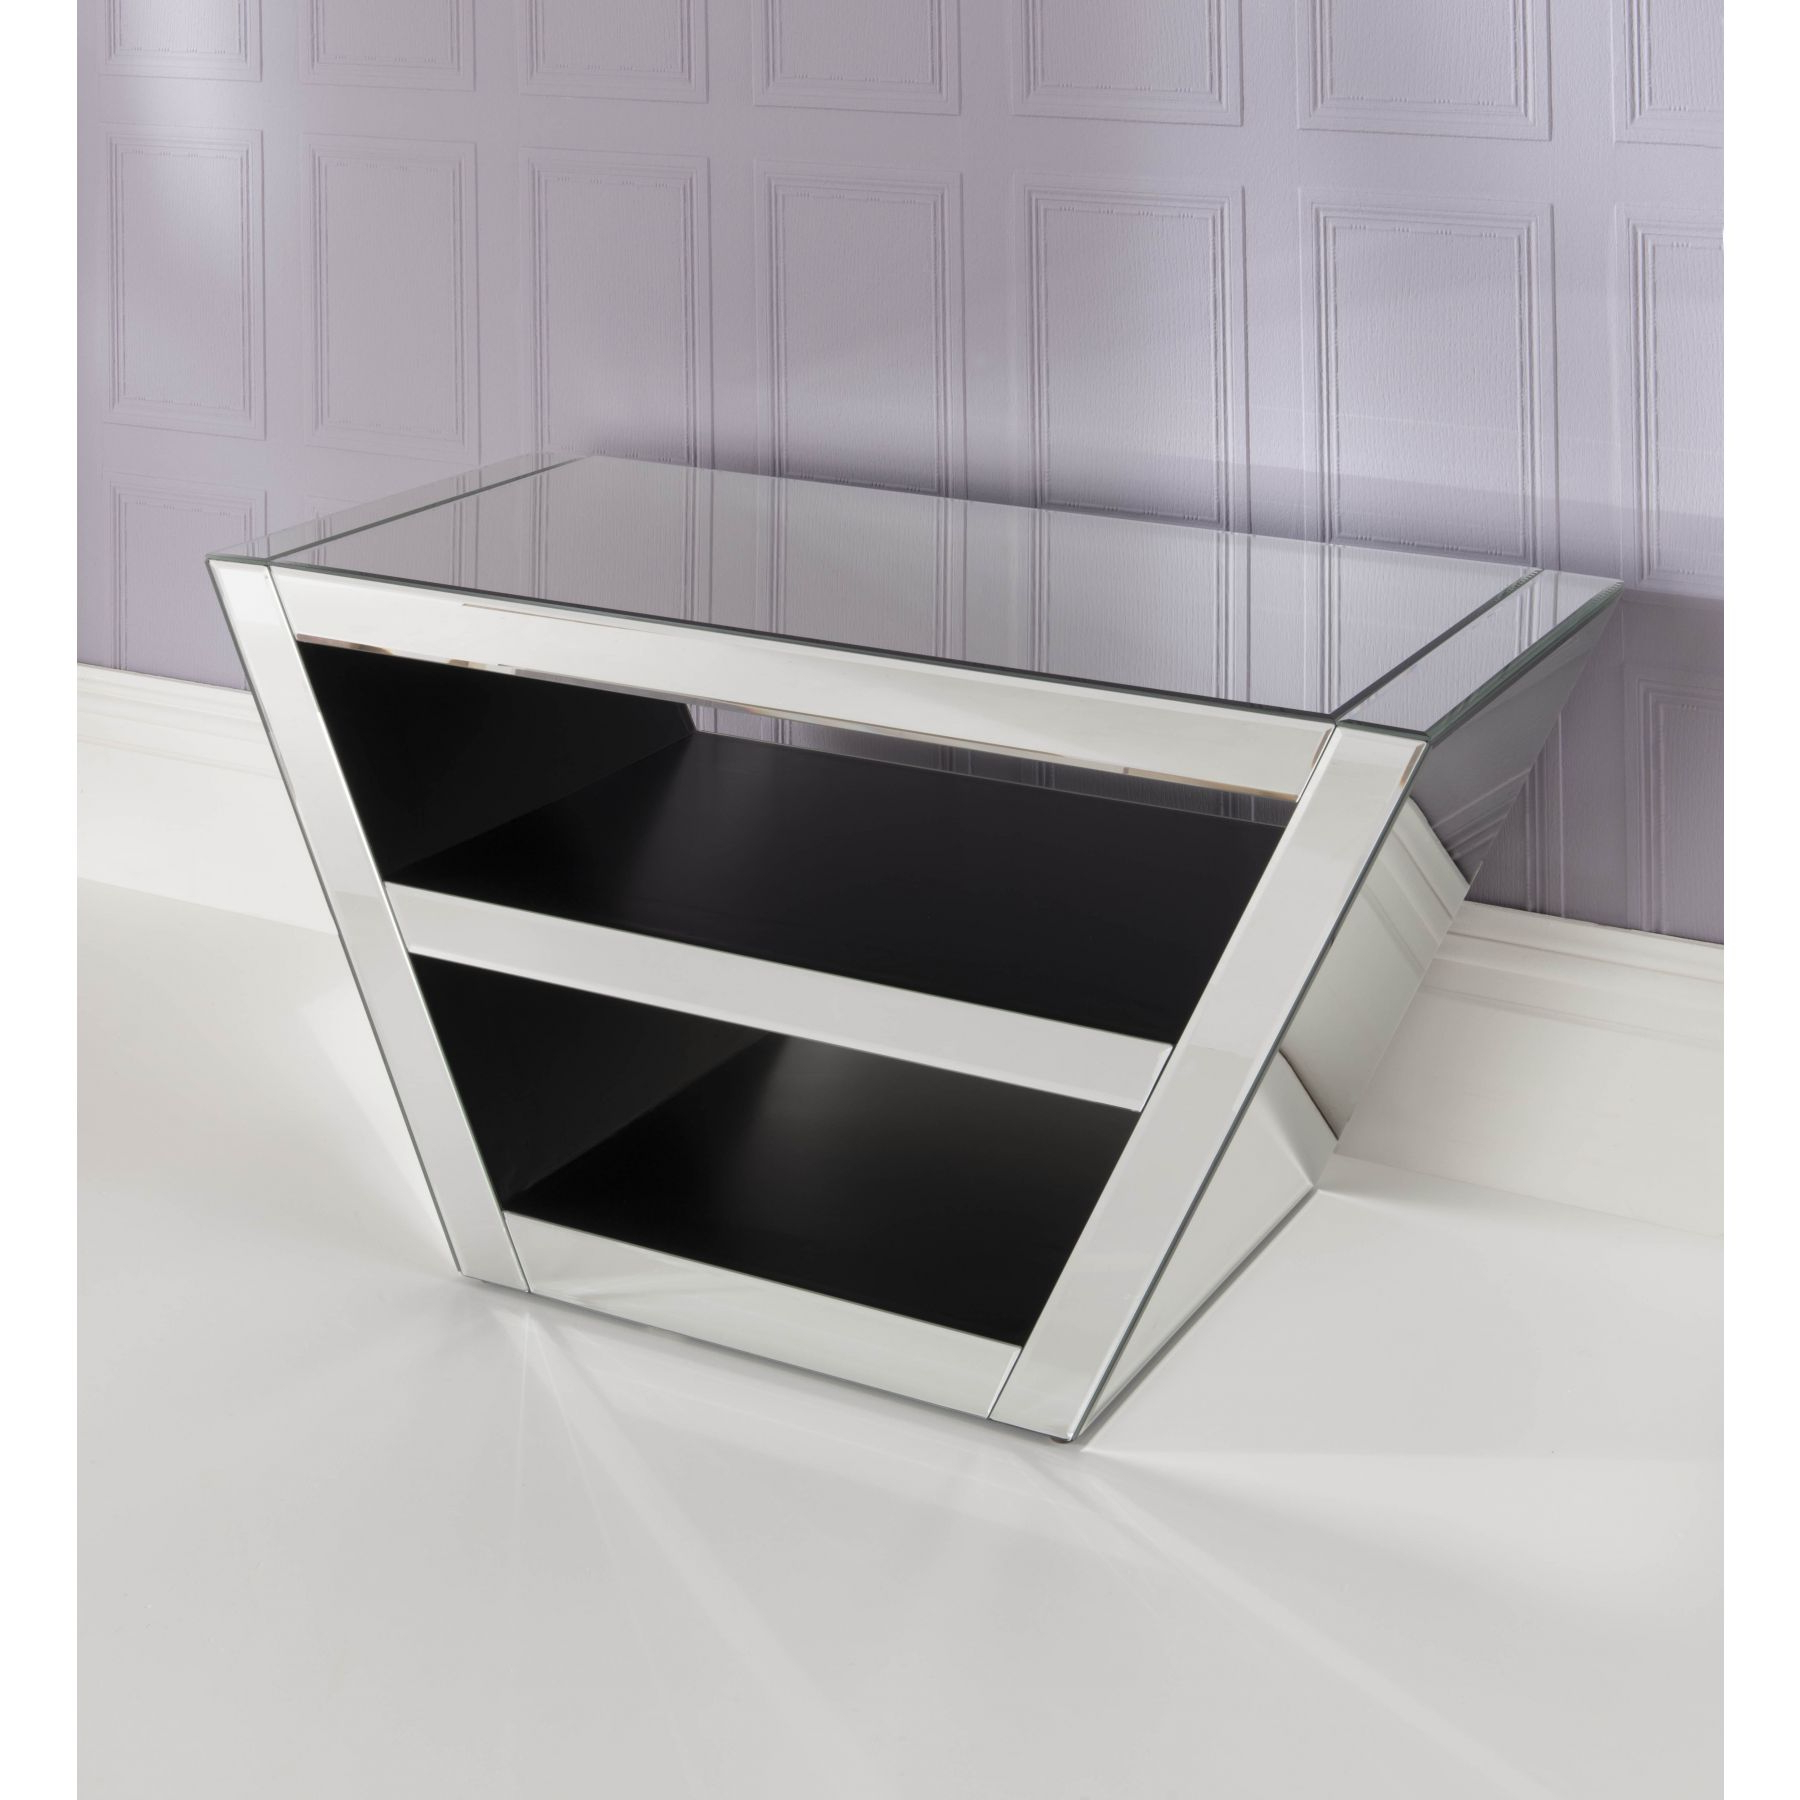 Favorite Target Tv Stands Bookshelf Stand Ikea Wall Mounted Cabinet 55 Inch For Grey Corner Tv Stands (View 5 of 20)